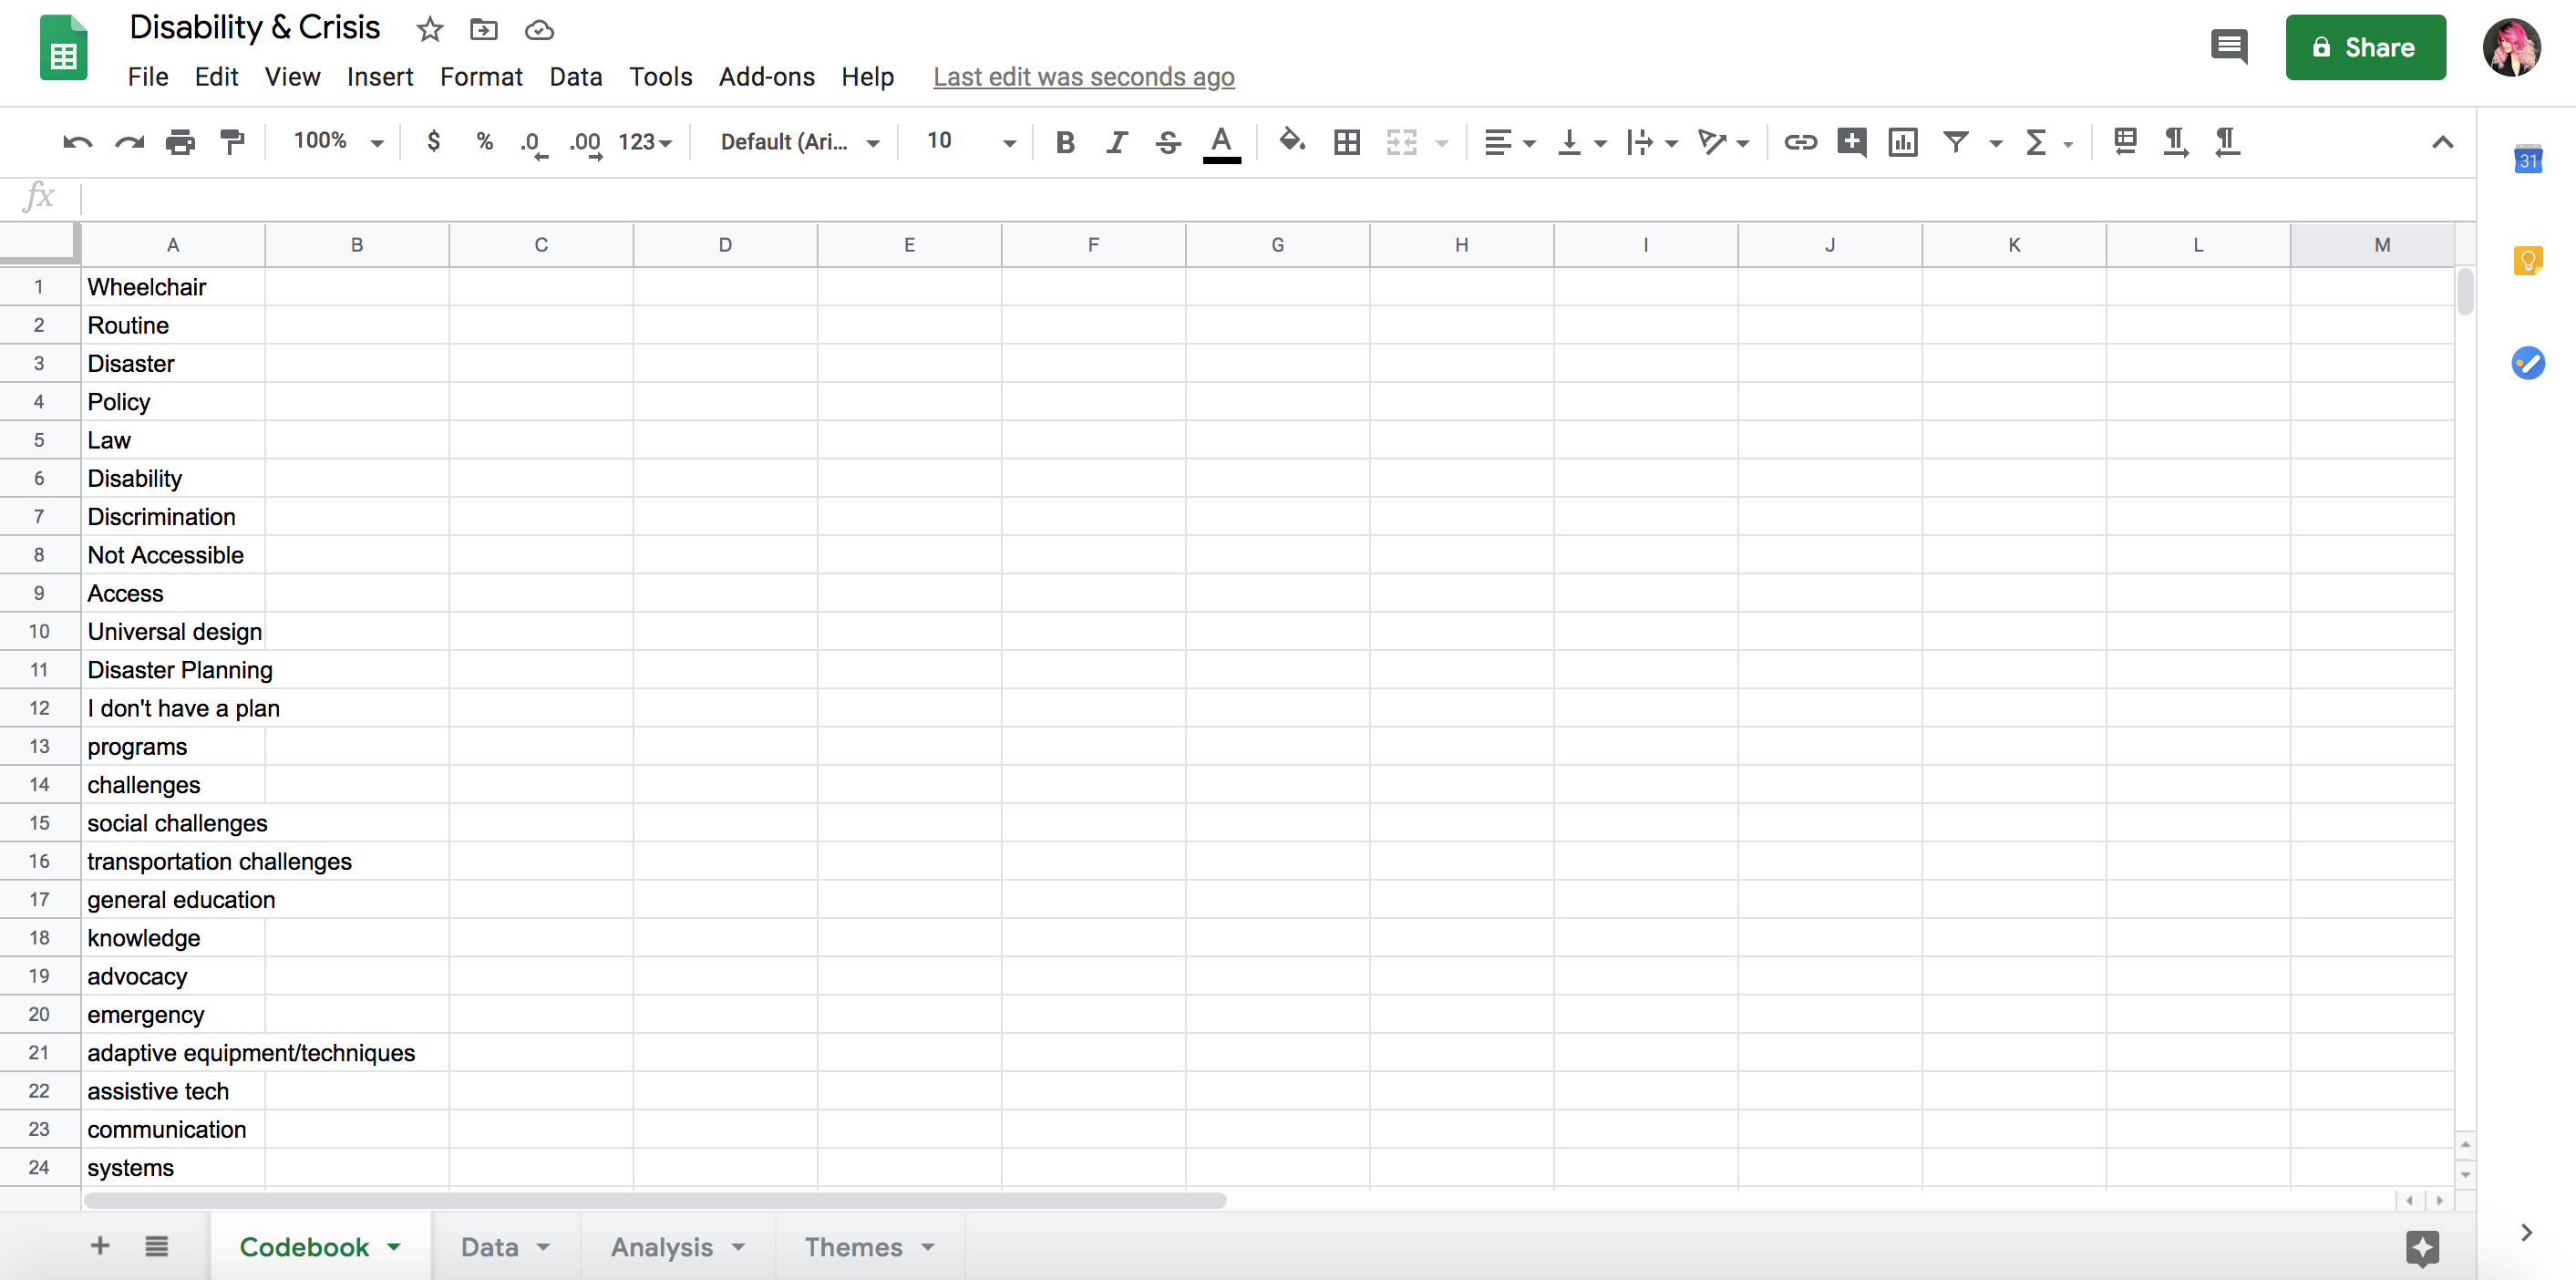 Google Excel sheet of terms related to disability